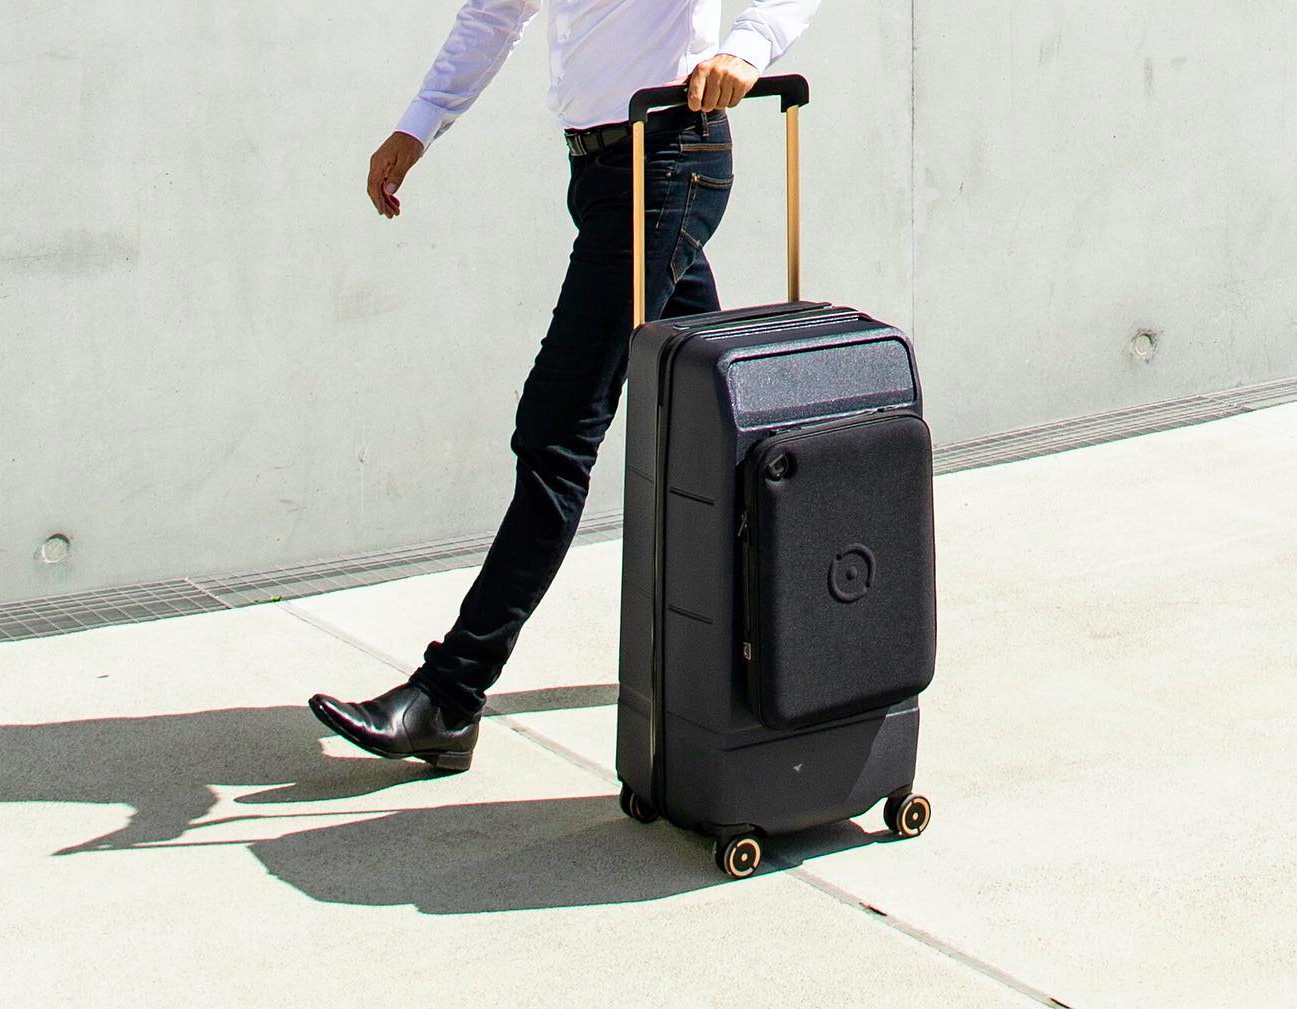 KABUTO is Your All-In-One Travel Companion at werd.com